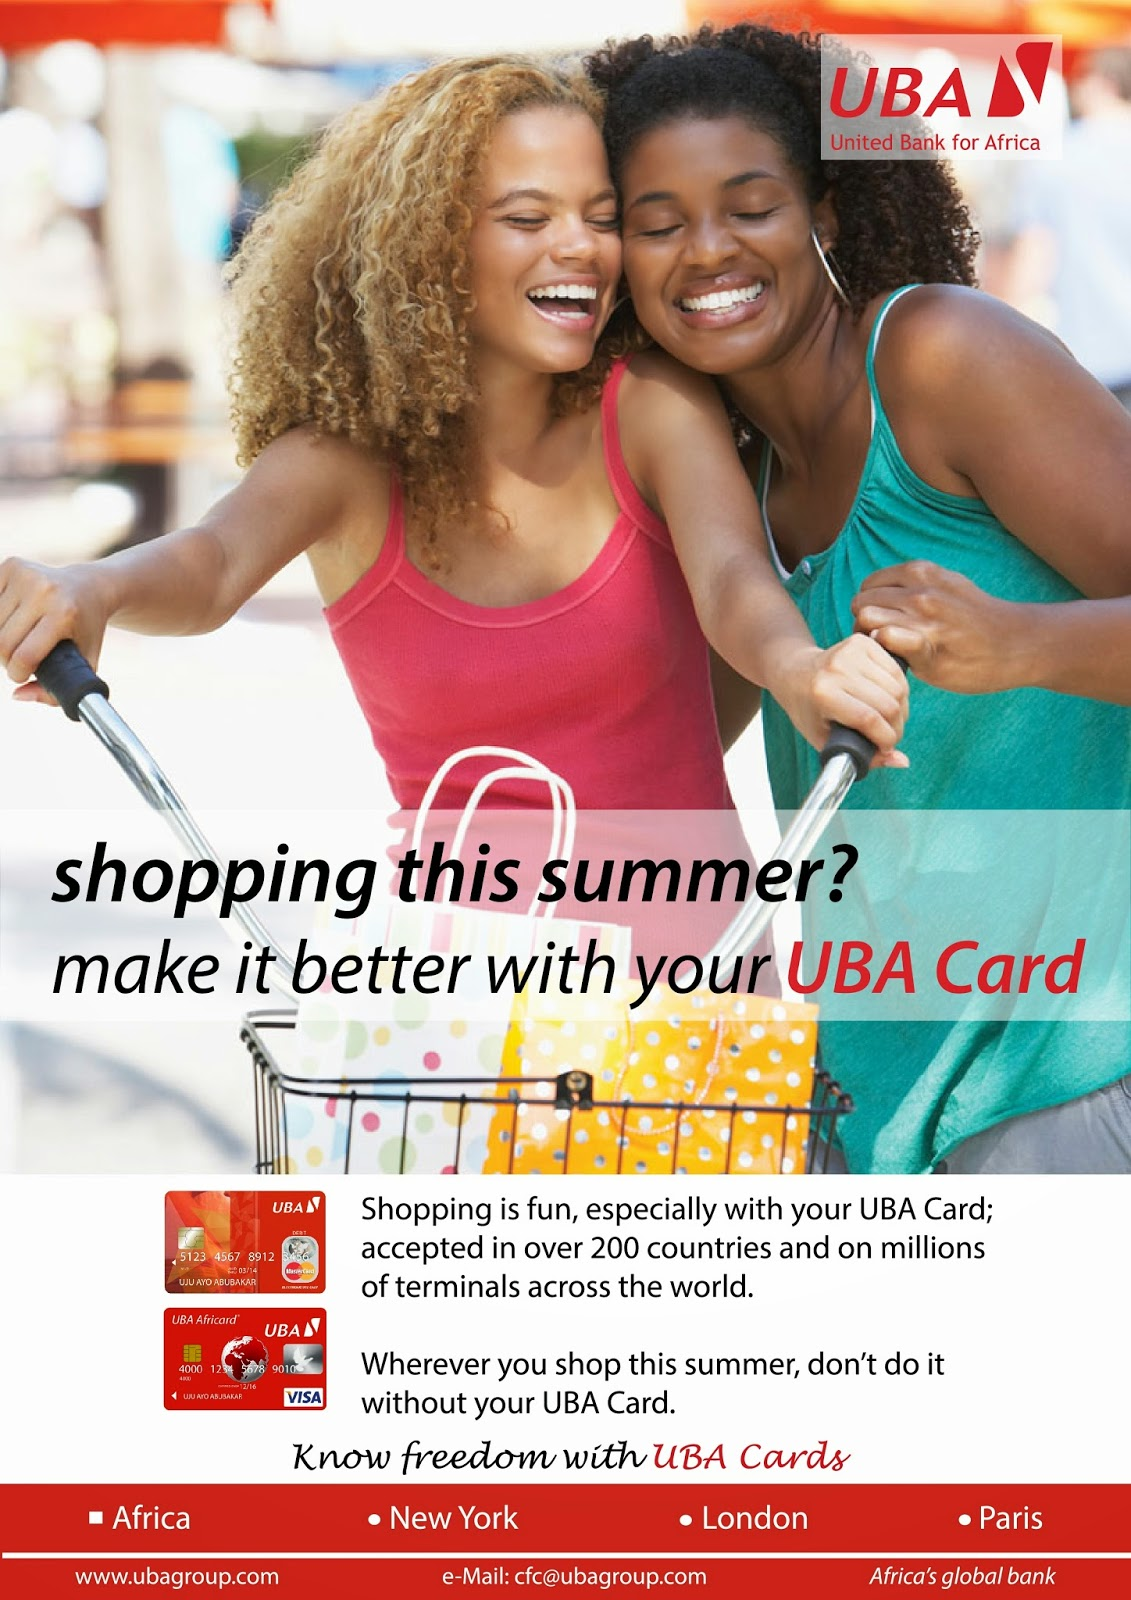 The Lion King - Blog Edition: UBA Cards now accepted on PayPal